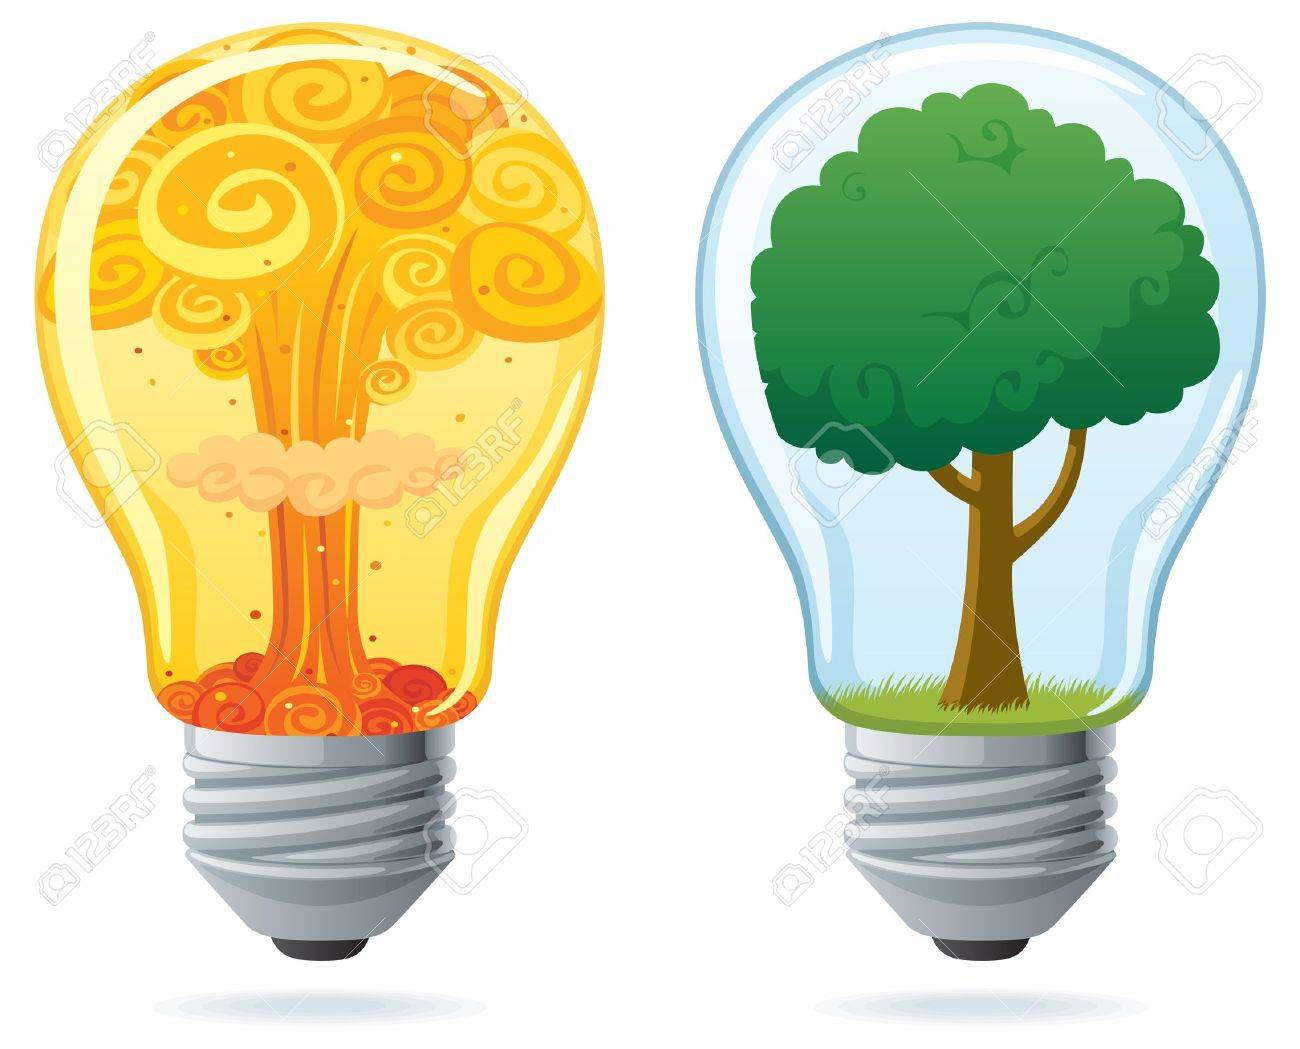 Conceptual illustration of 2 light bulbs, powered by nuclear and by clean energy.  No transparency used. Basic (linear) gradients. Stock Vector - 10369812